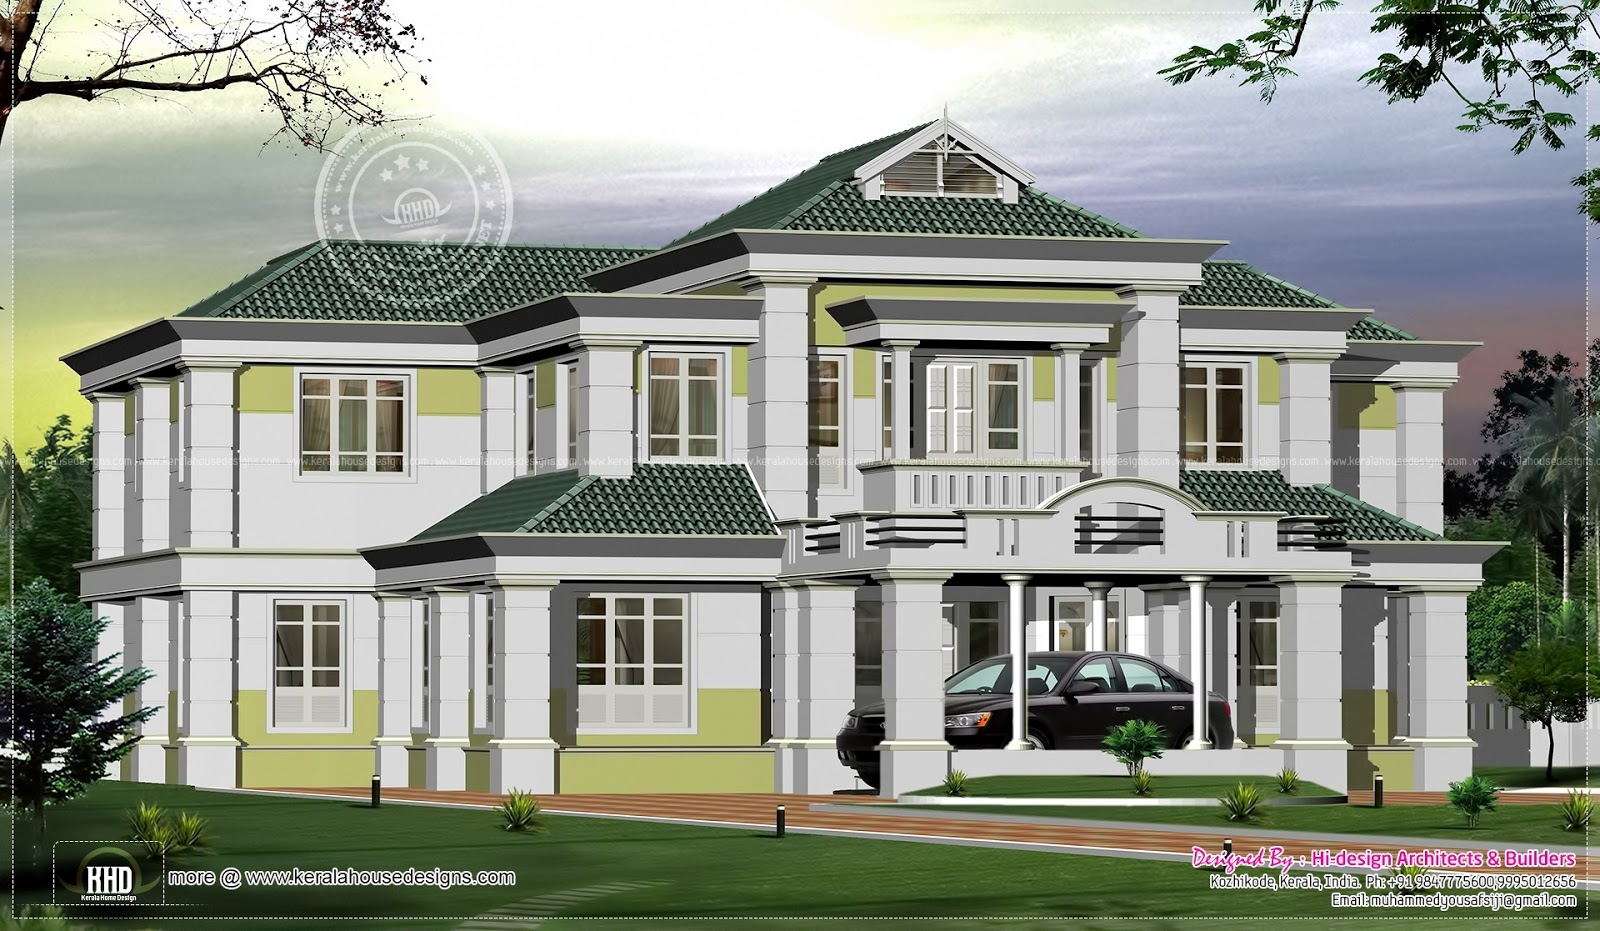 Kerala Luxury Bungalow Model Home Indianhomemakeovercom